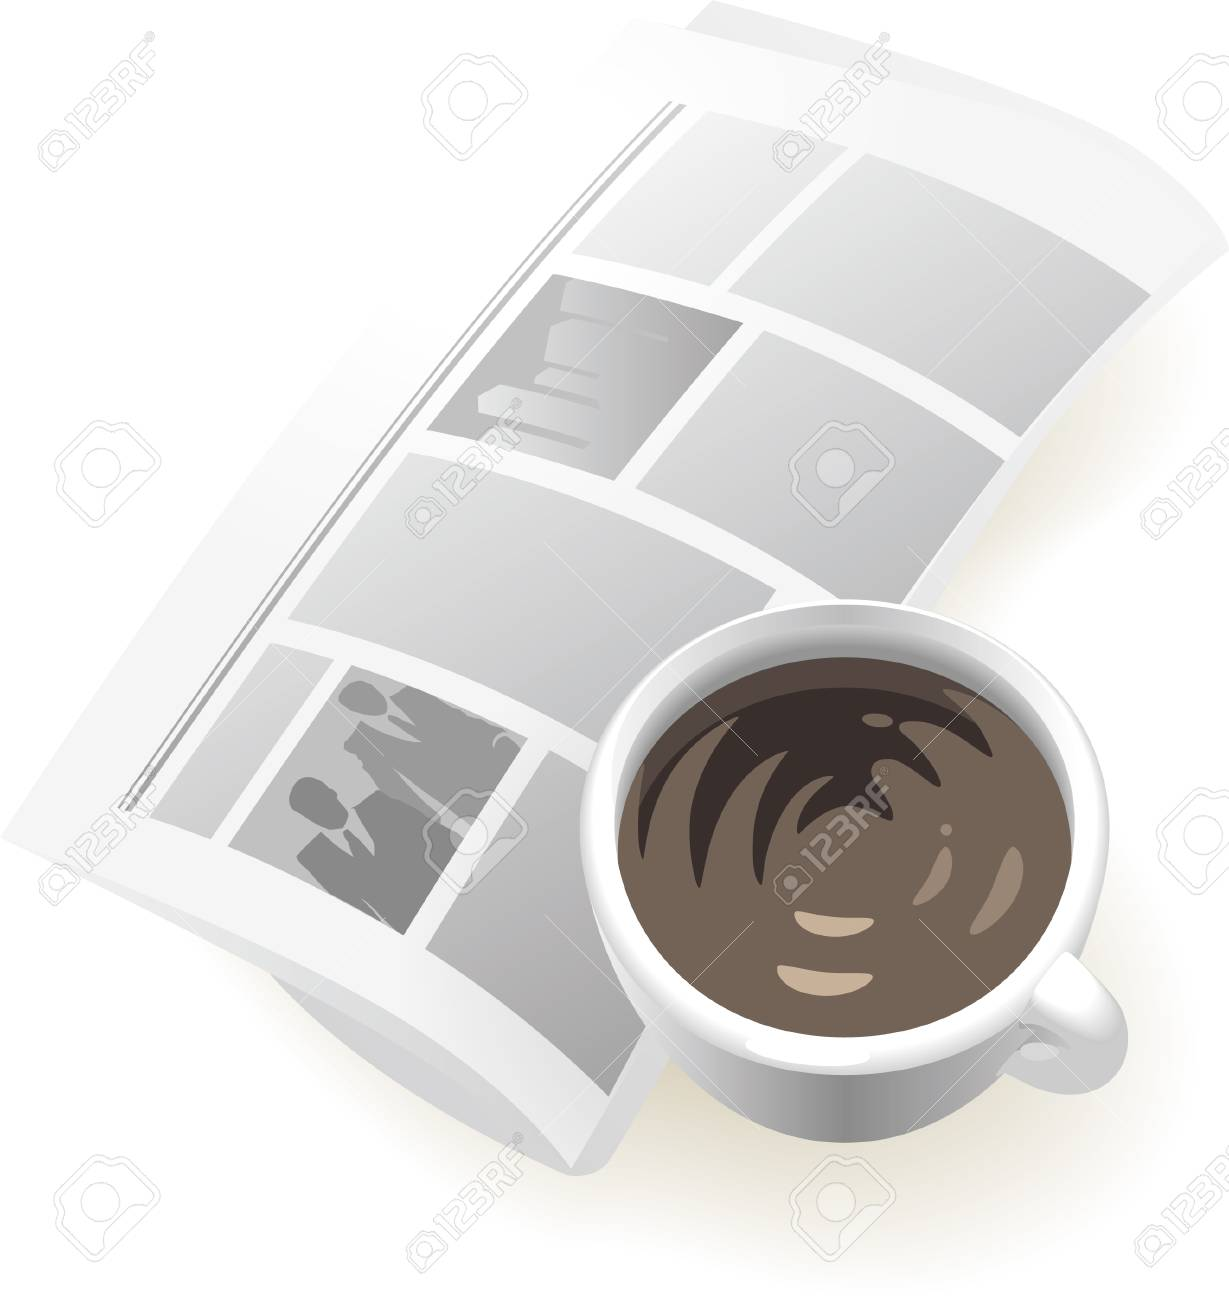 Newspaper and cup of coffee. Vector illustration. Stock Vector - 5433589